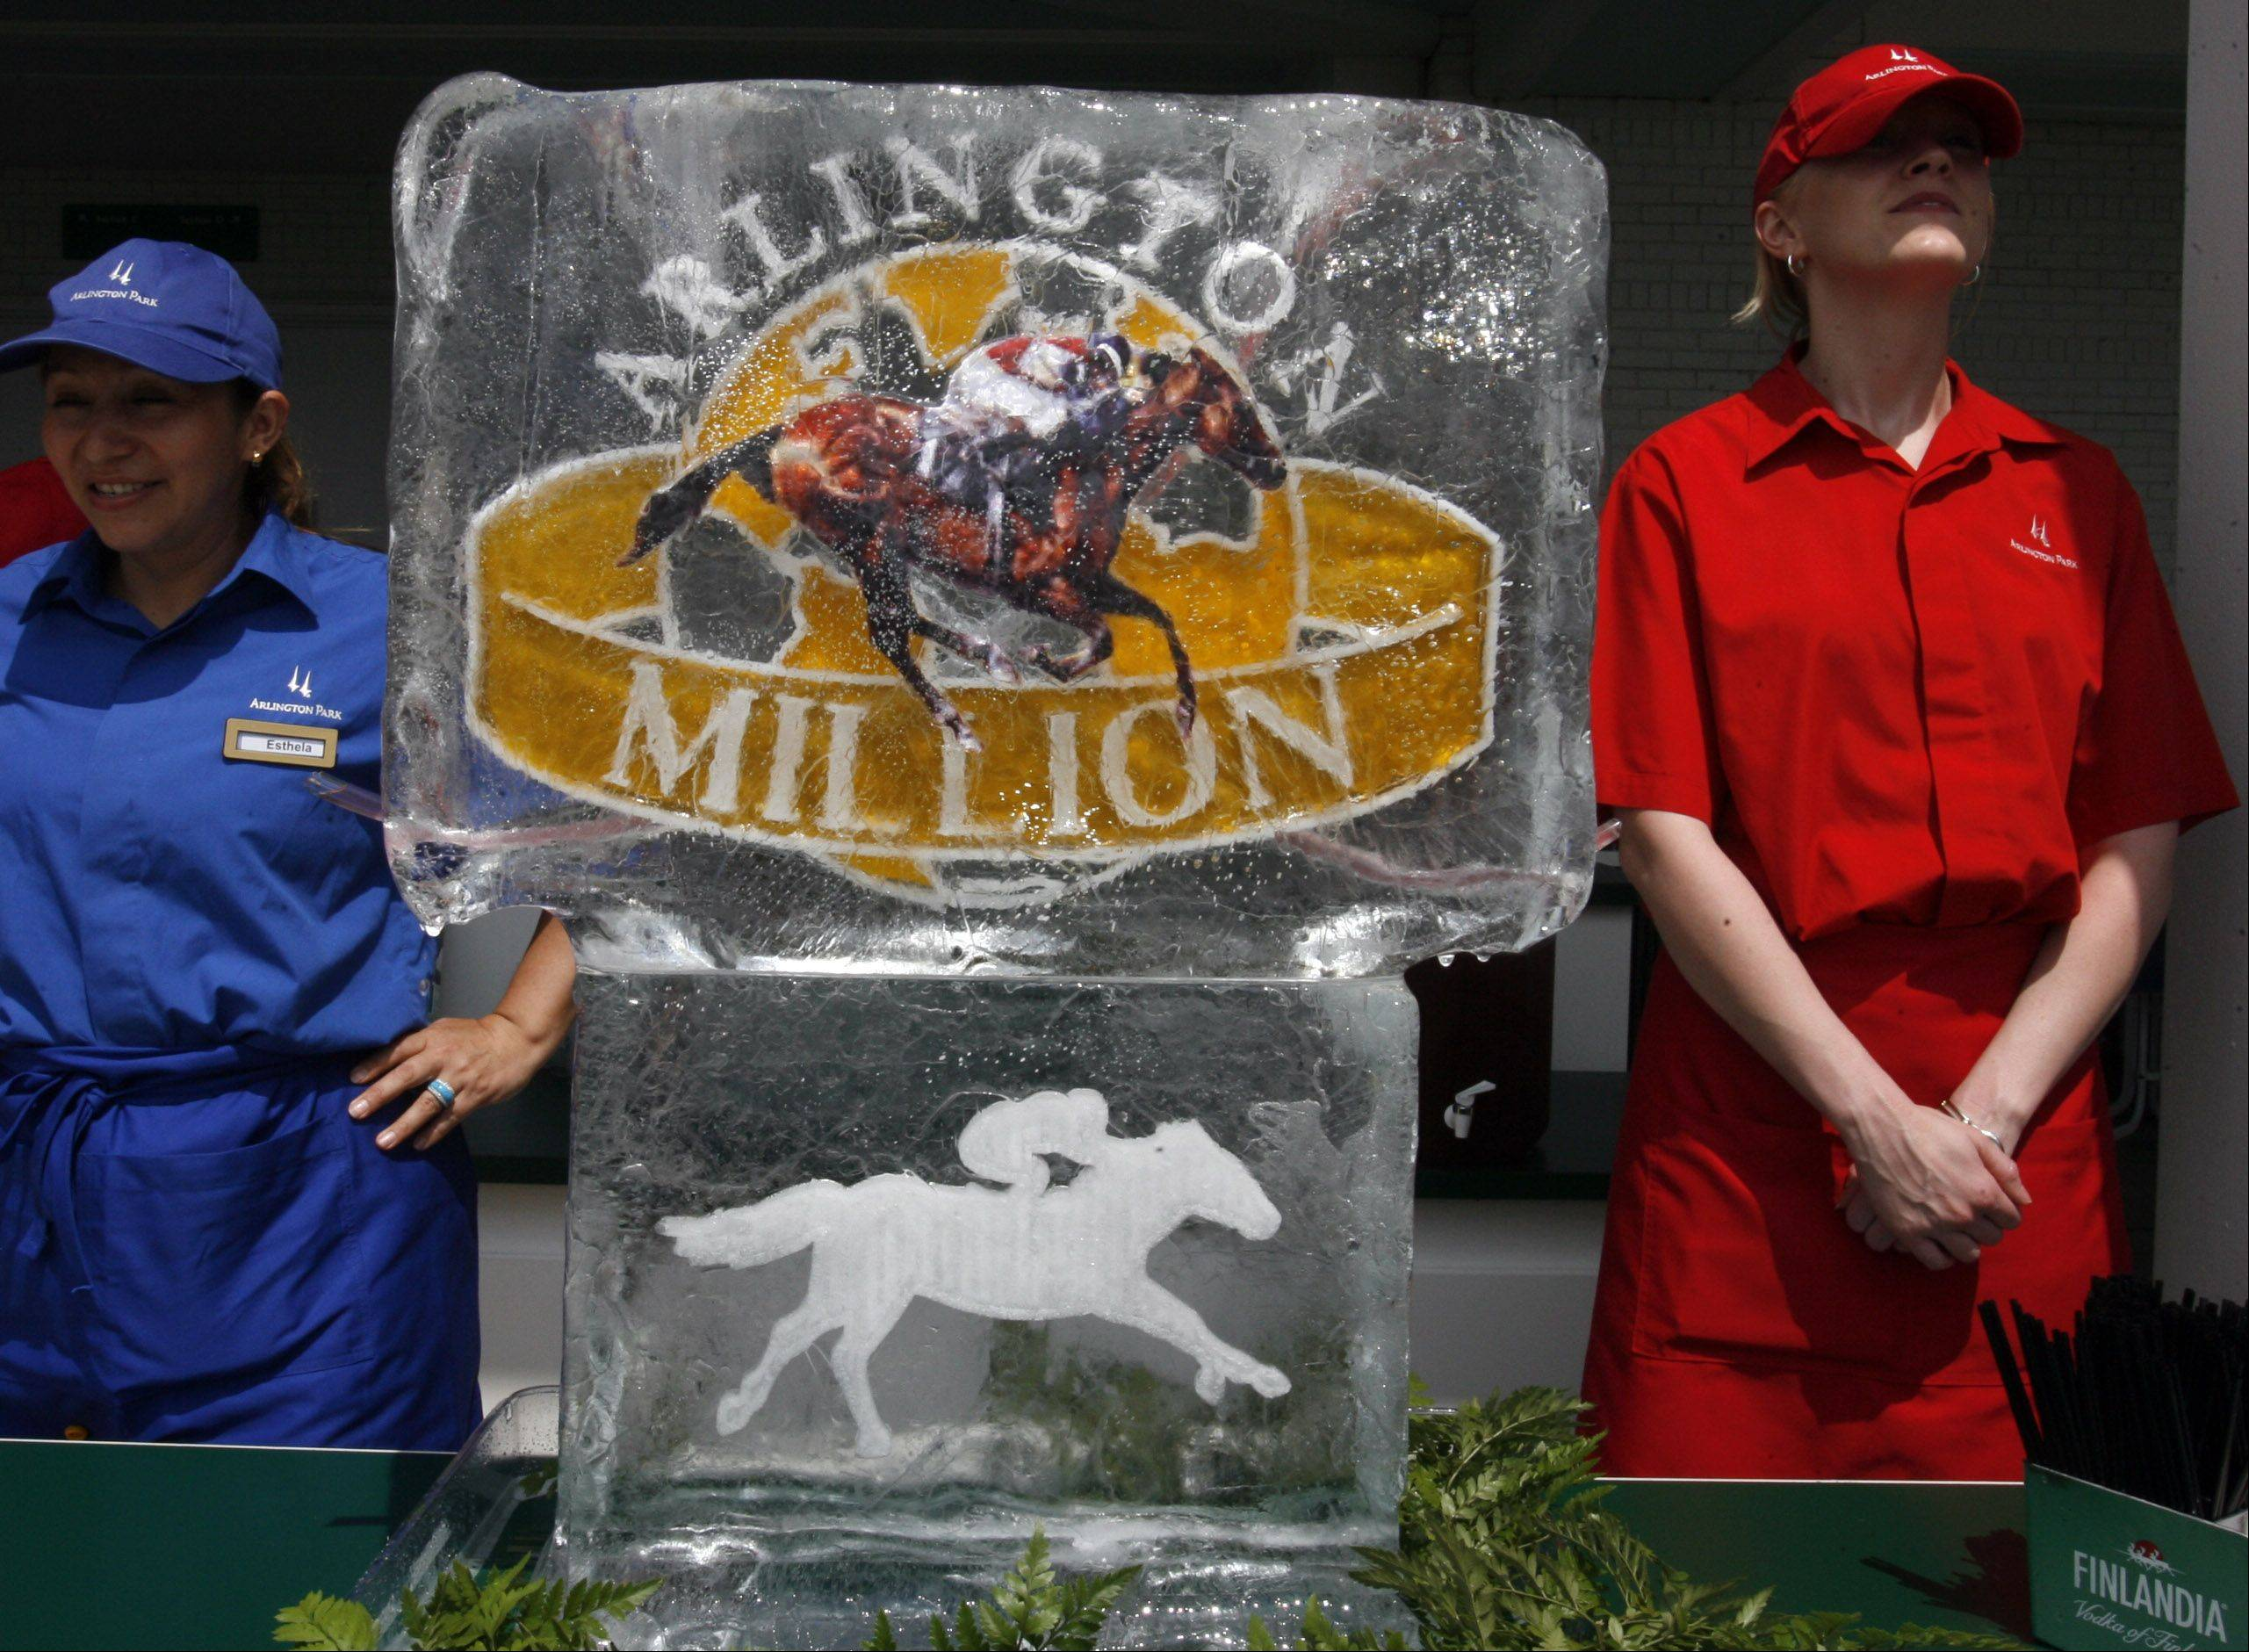 A Scene from the 27th Arlington Million.